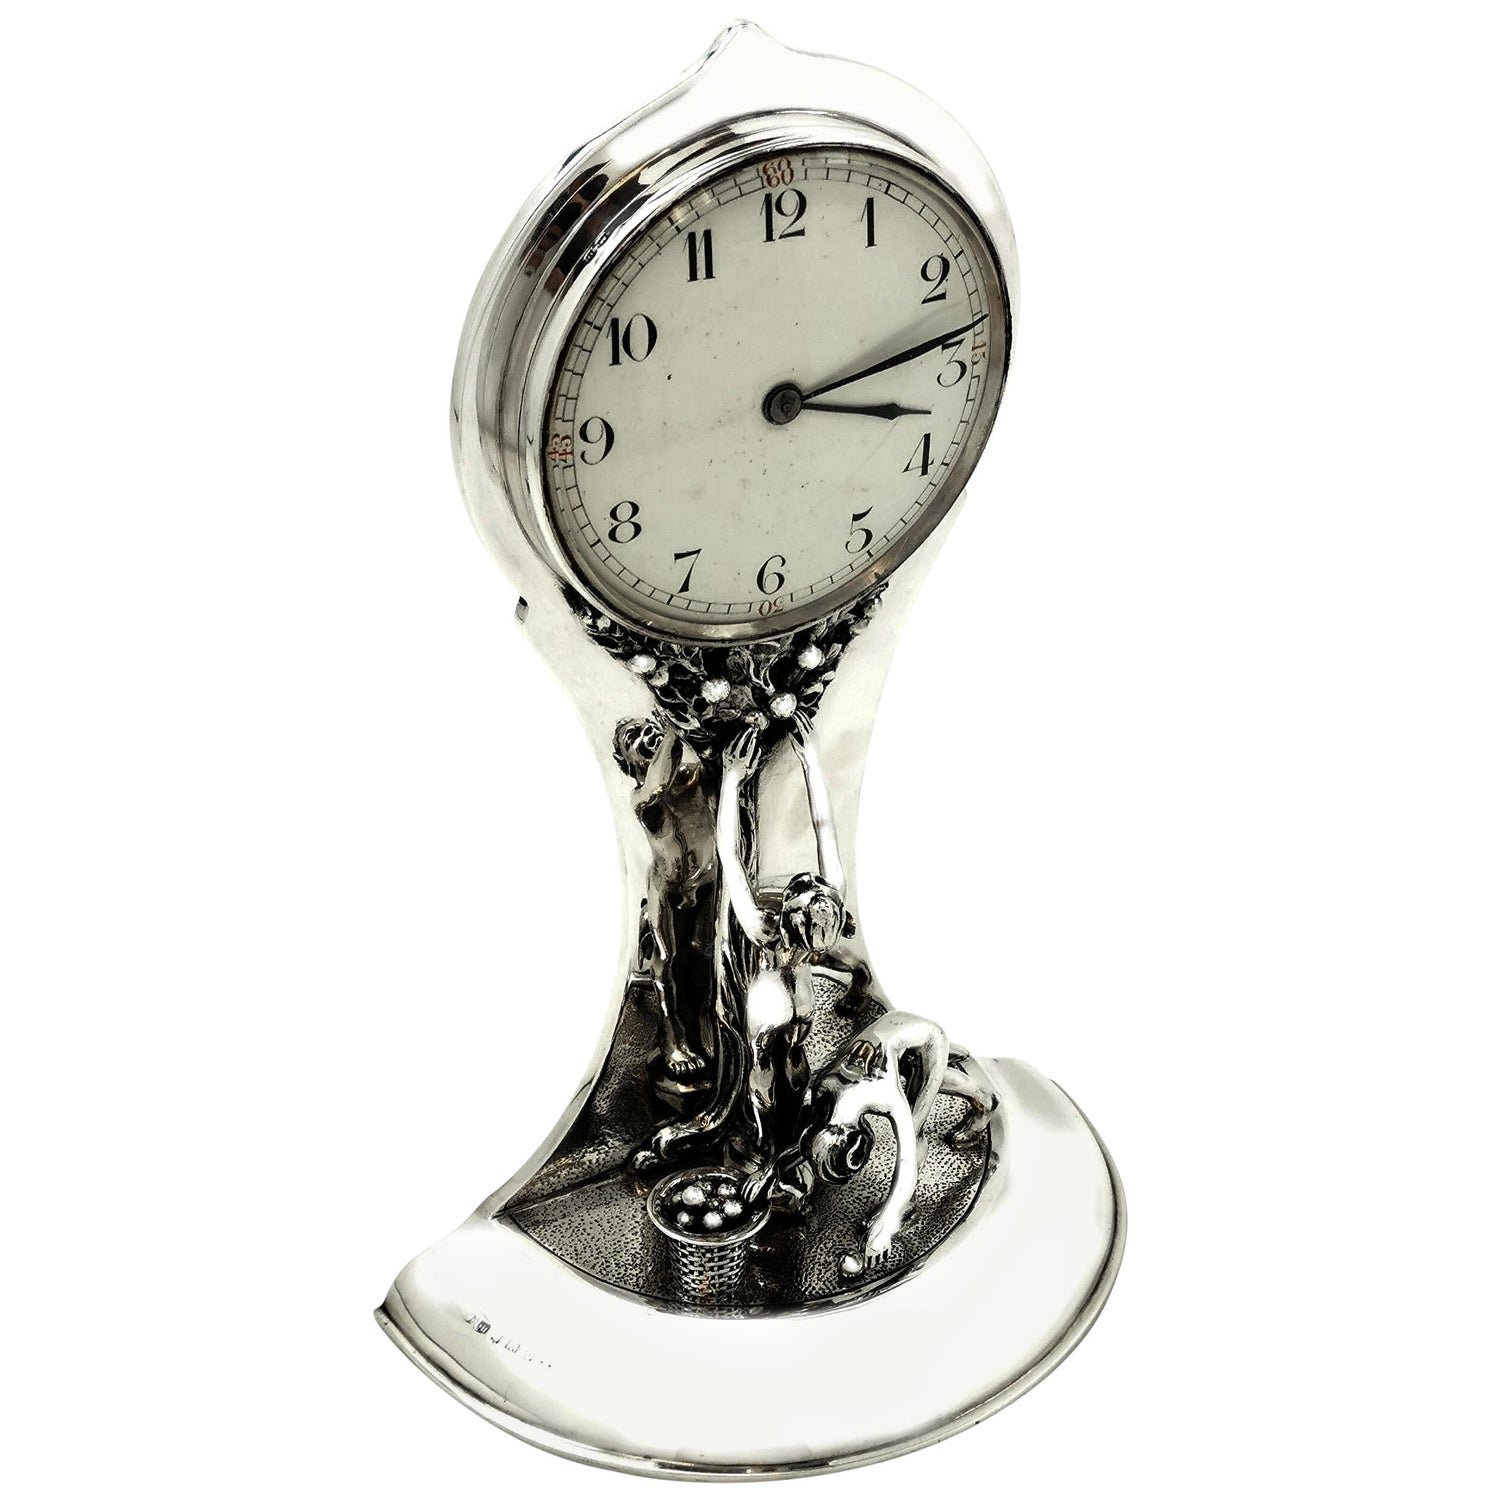 Antique Silver Art Nouveau Table Clock 1913 Tree of Life Design